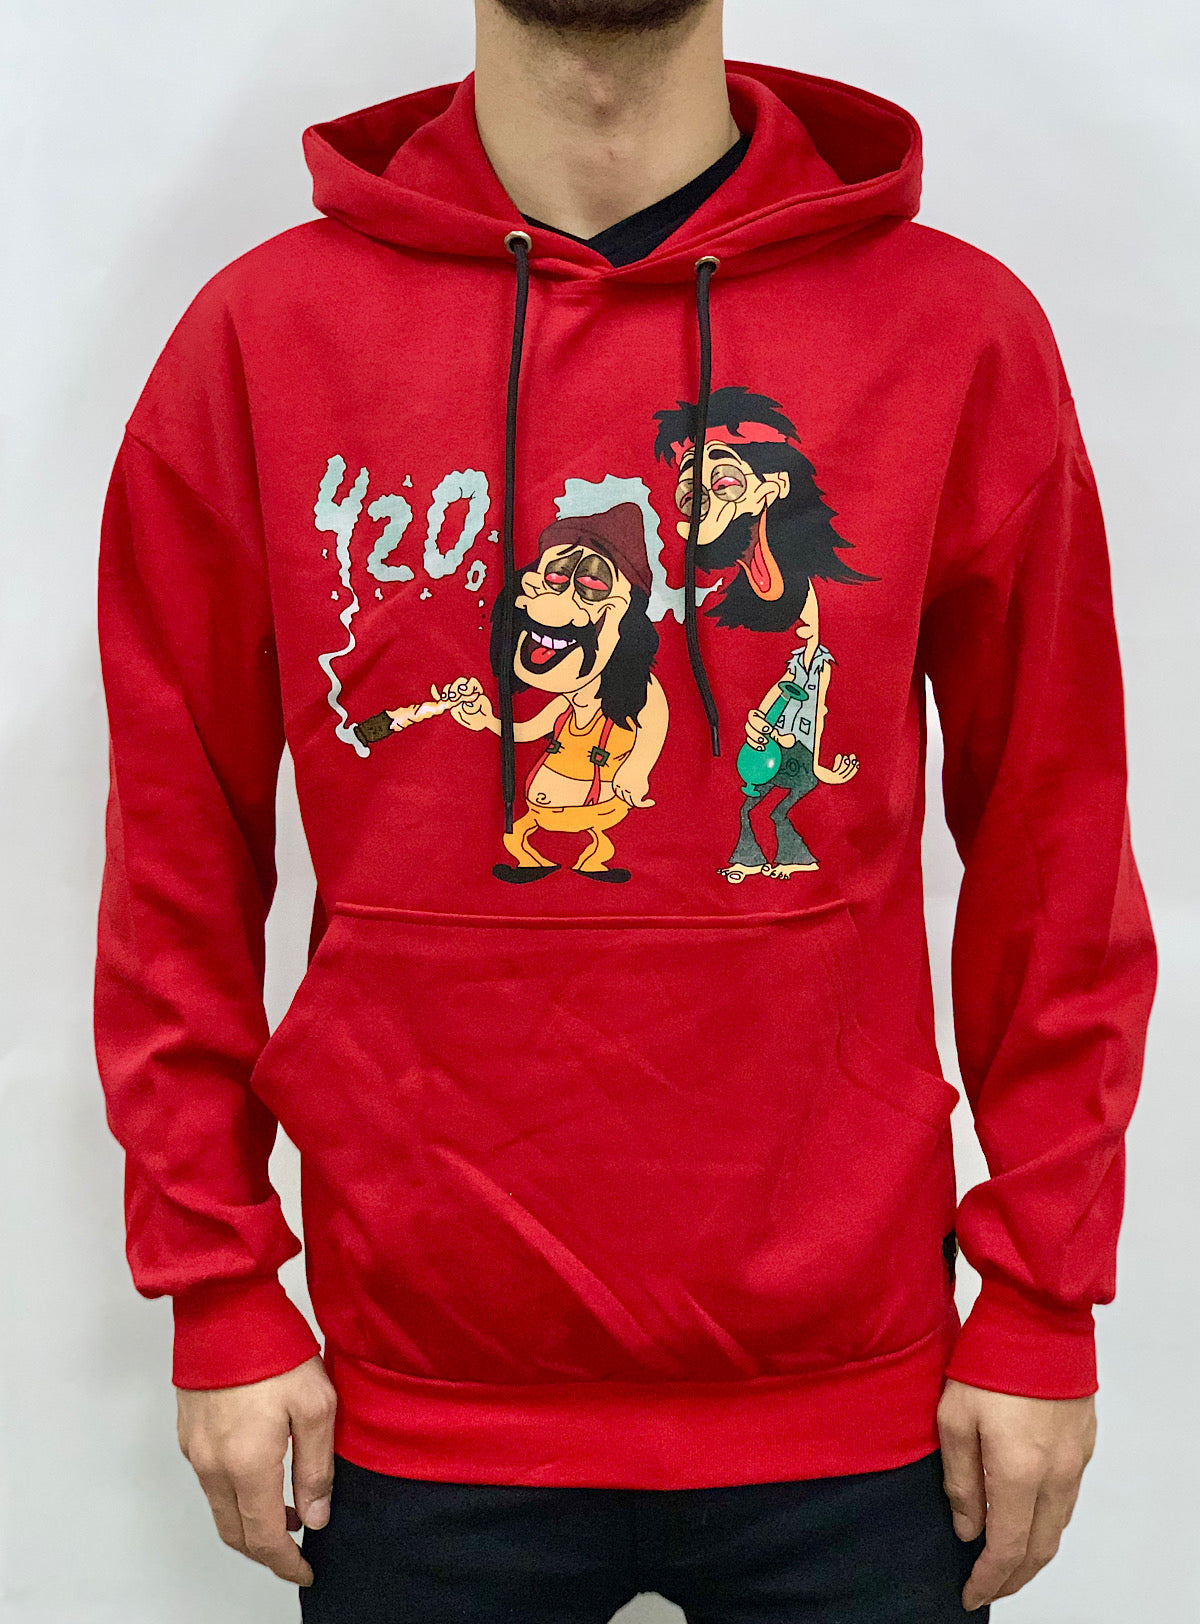 Buyer's Choice Hoodie - Smoke - Red - P9020